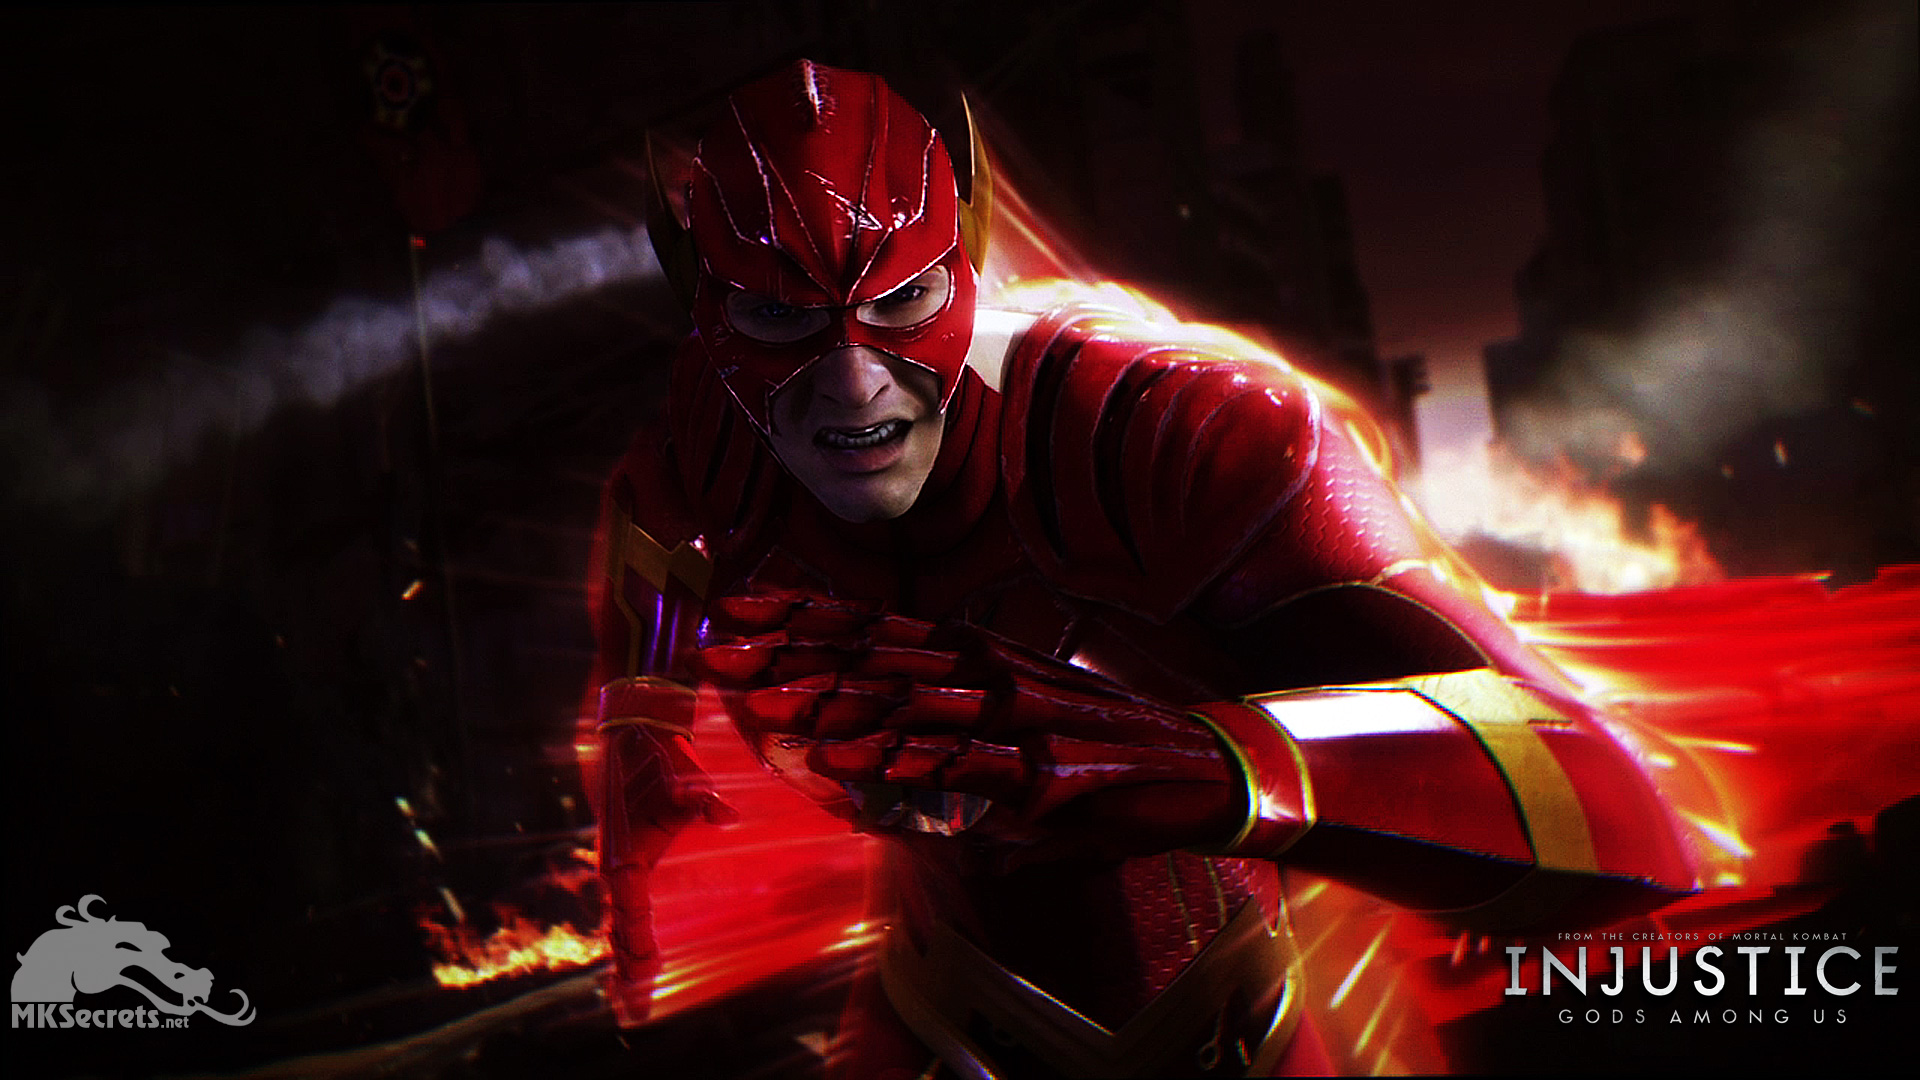 Injustice gods among us wallpaper the flash injustice online injustice gods among us wallpaper the flash voltagebd Image collections